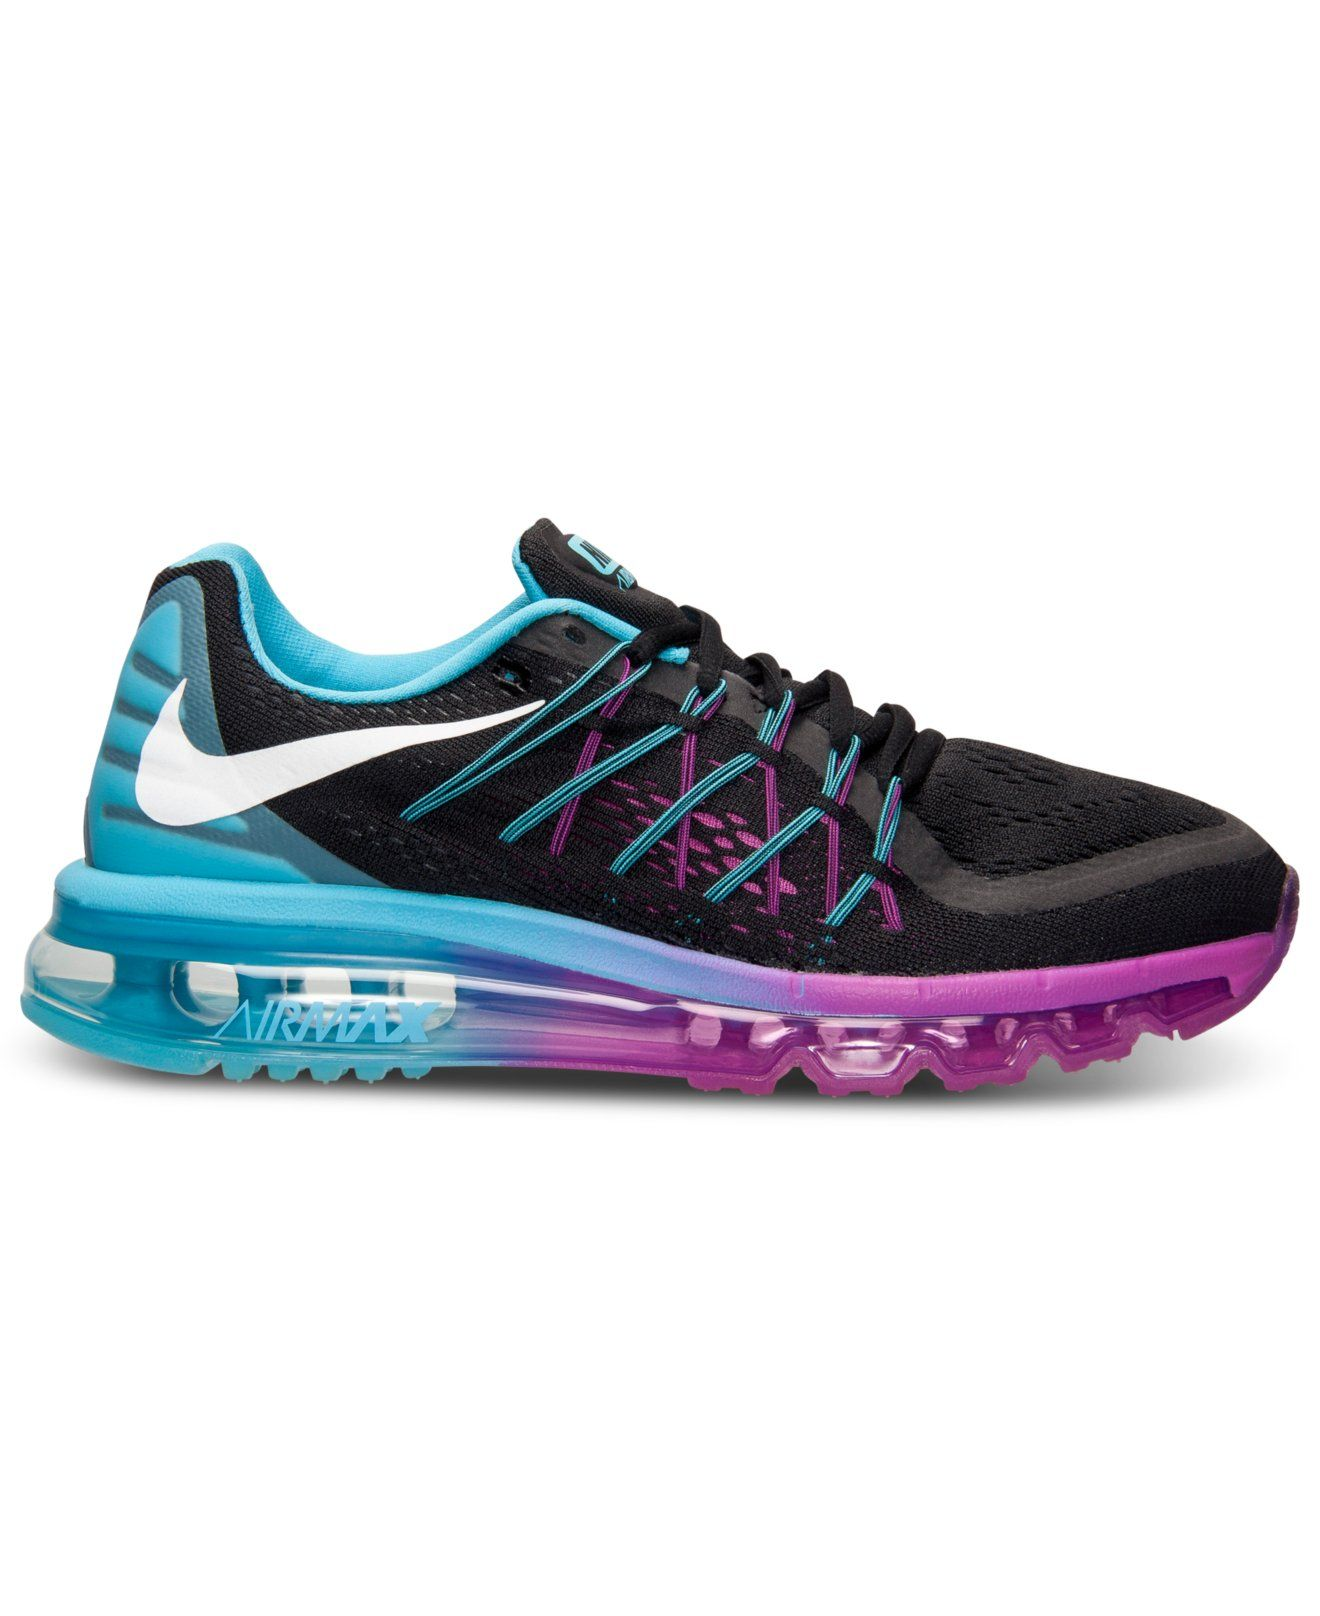 separation shoes fab0d 46b03 True style lies in the details — Nike Air Max 2015 running sneakers